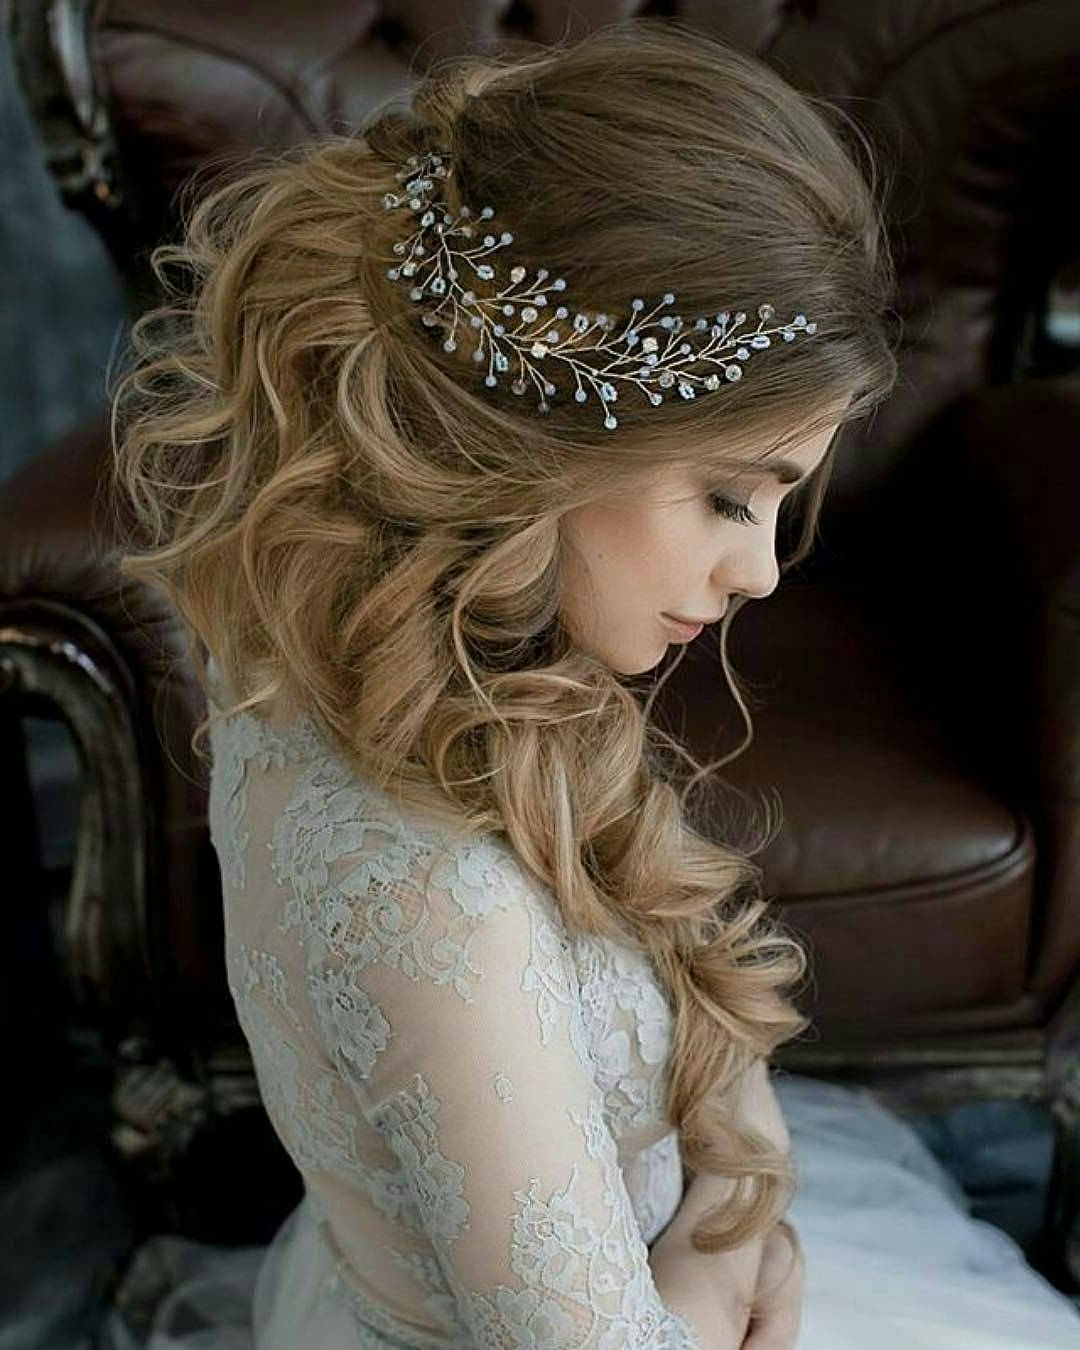 10 Lavish Wedding Hairstyles For Long Hair – Wedding Hairstyle Ideas Regarding Widely Used Wedding Updos With Bow Design (Gallery 16 of 20)